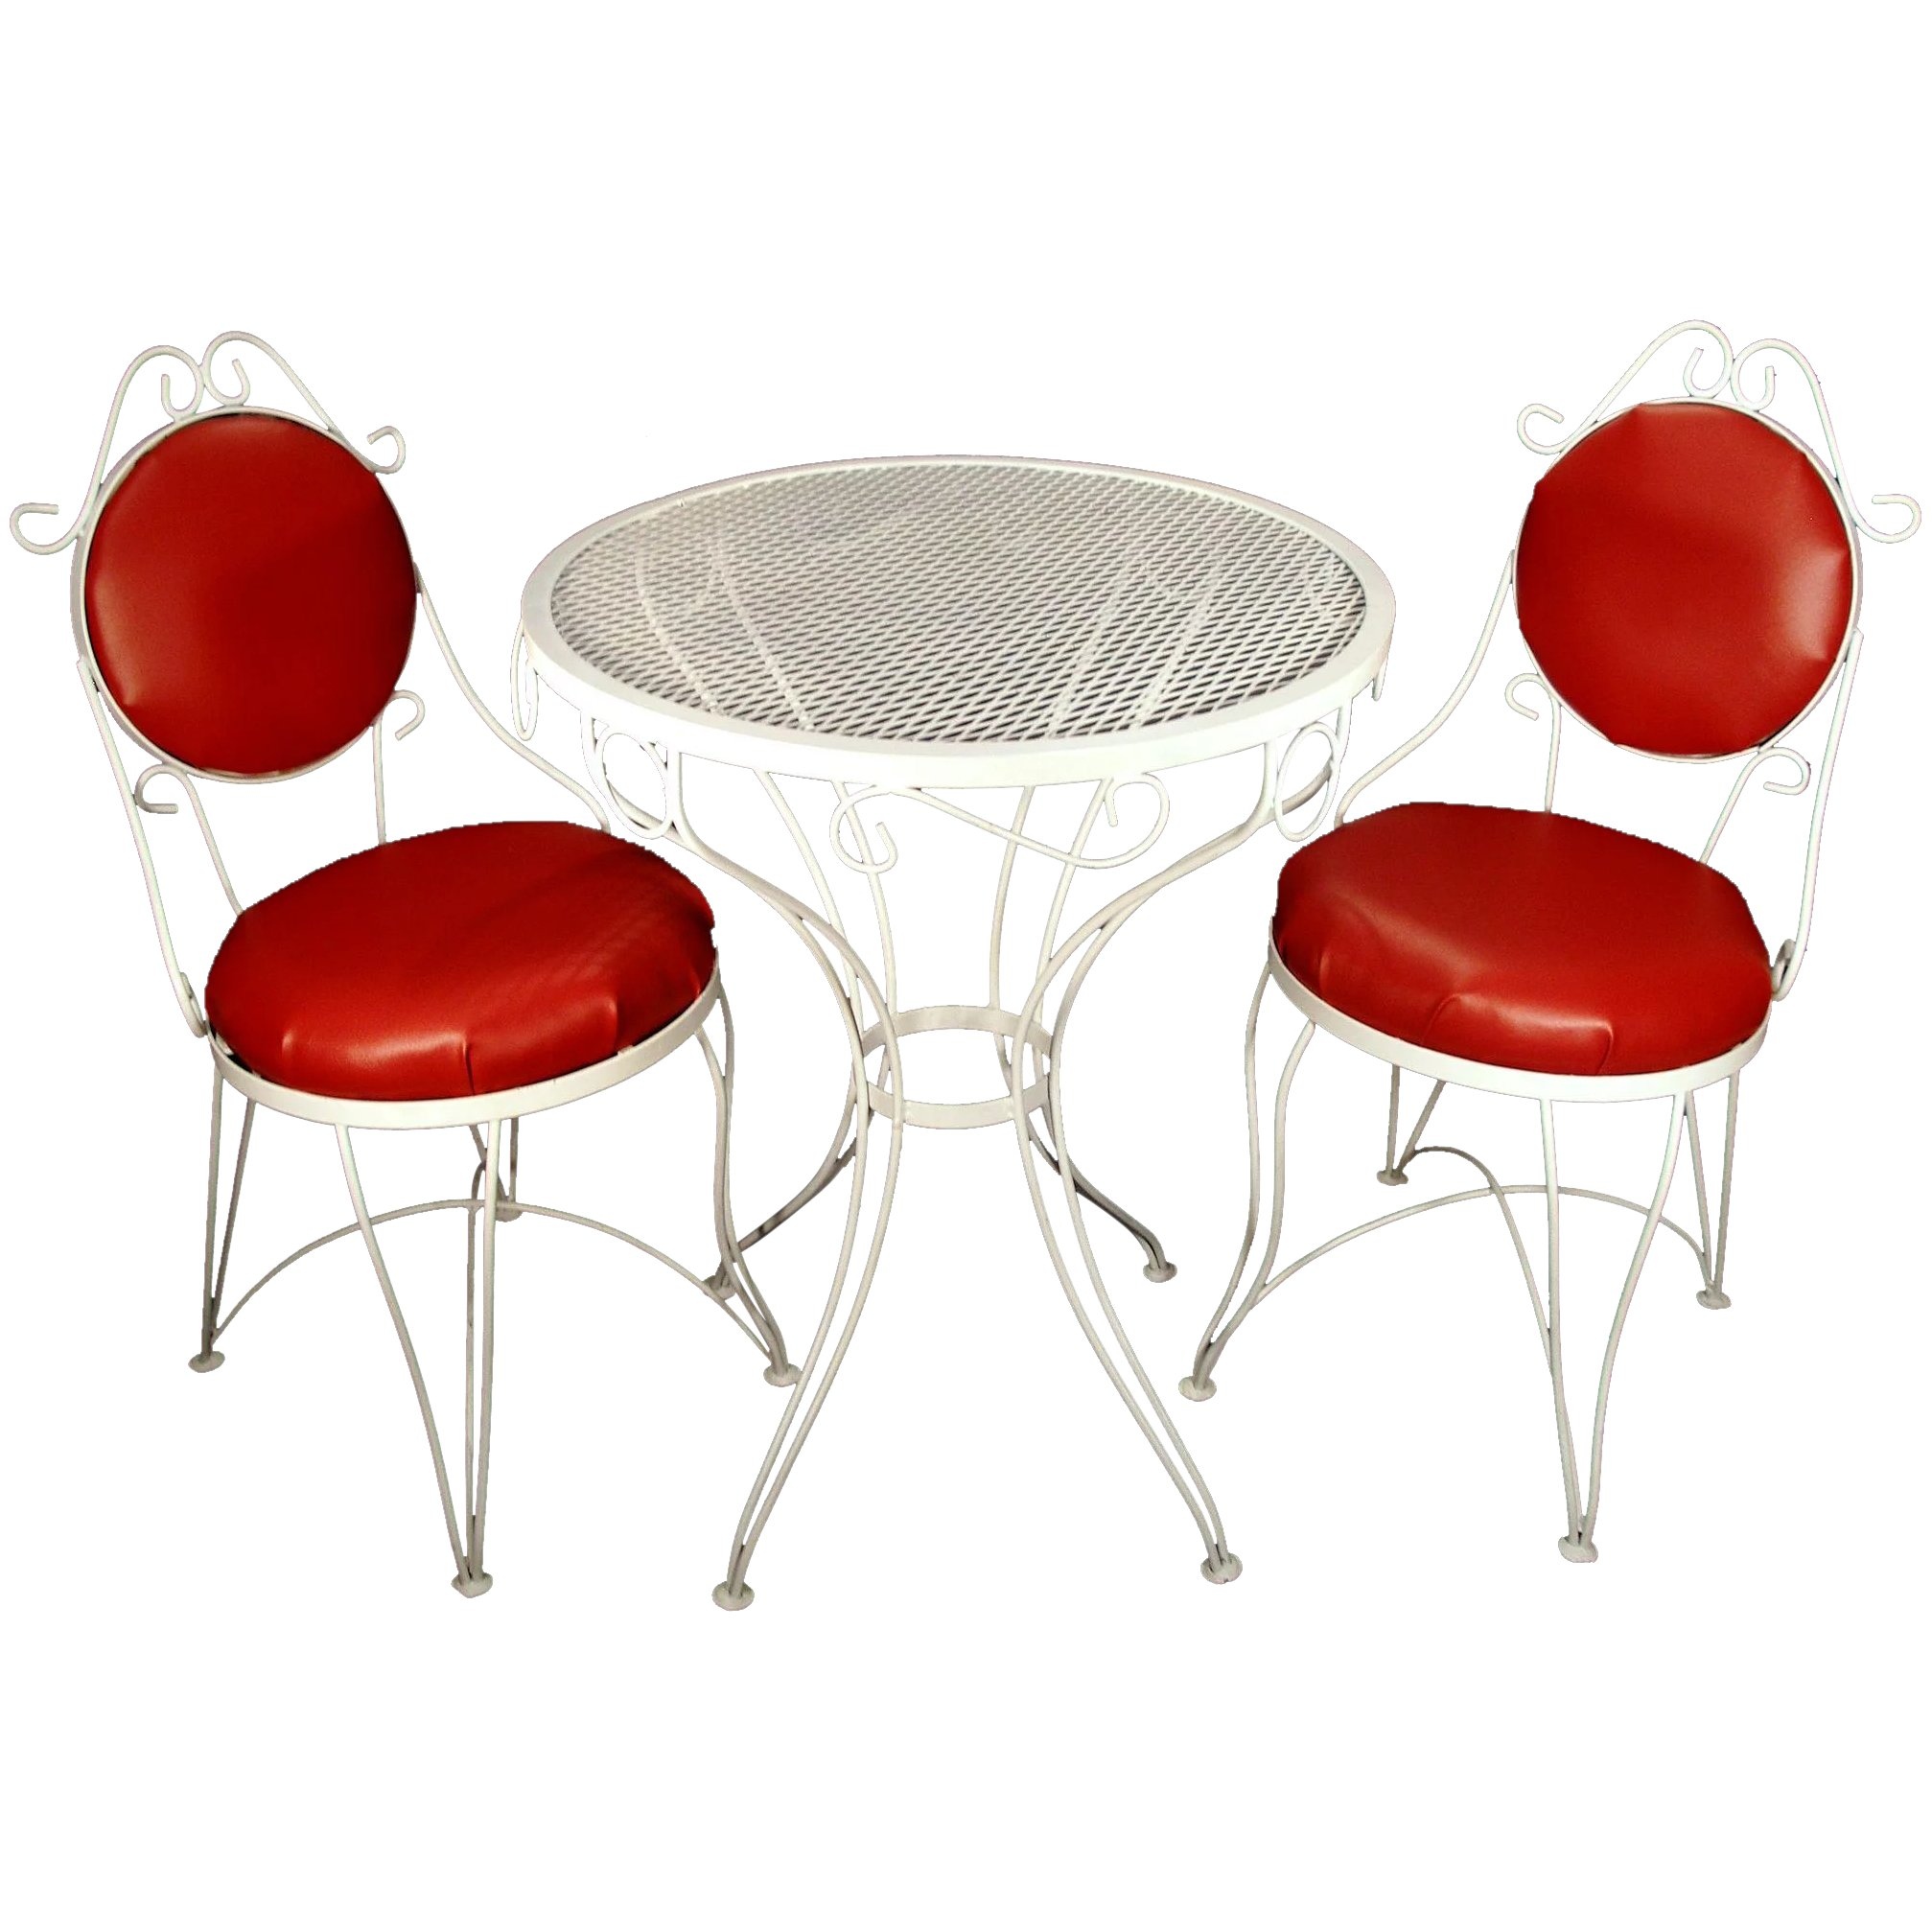 vintage mid century red white wrought iron ice cream parlor patio kitchen table chairs